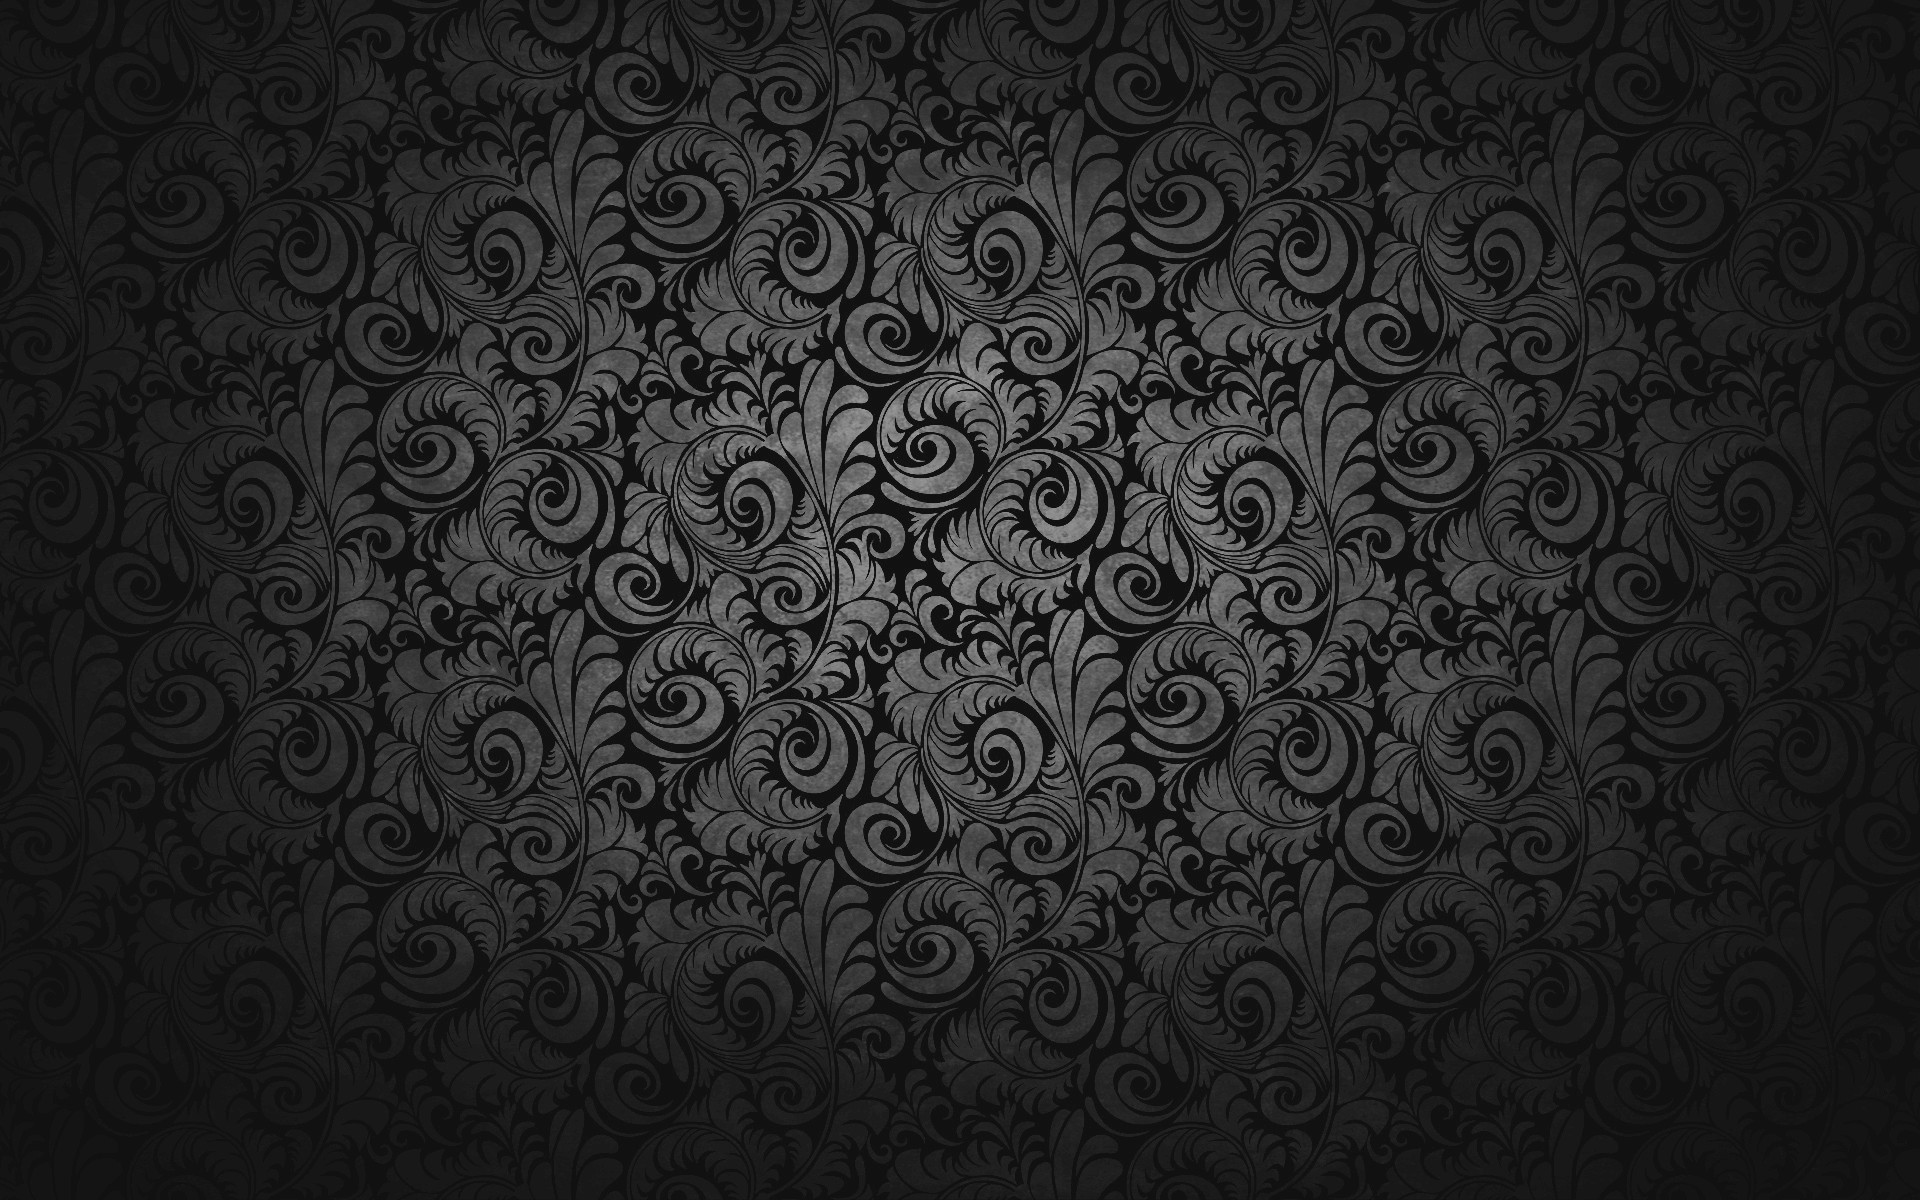 Wall Design Hd Photos : Hd black wallpapers